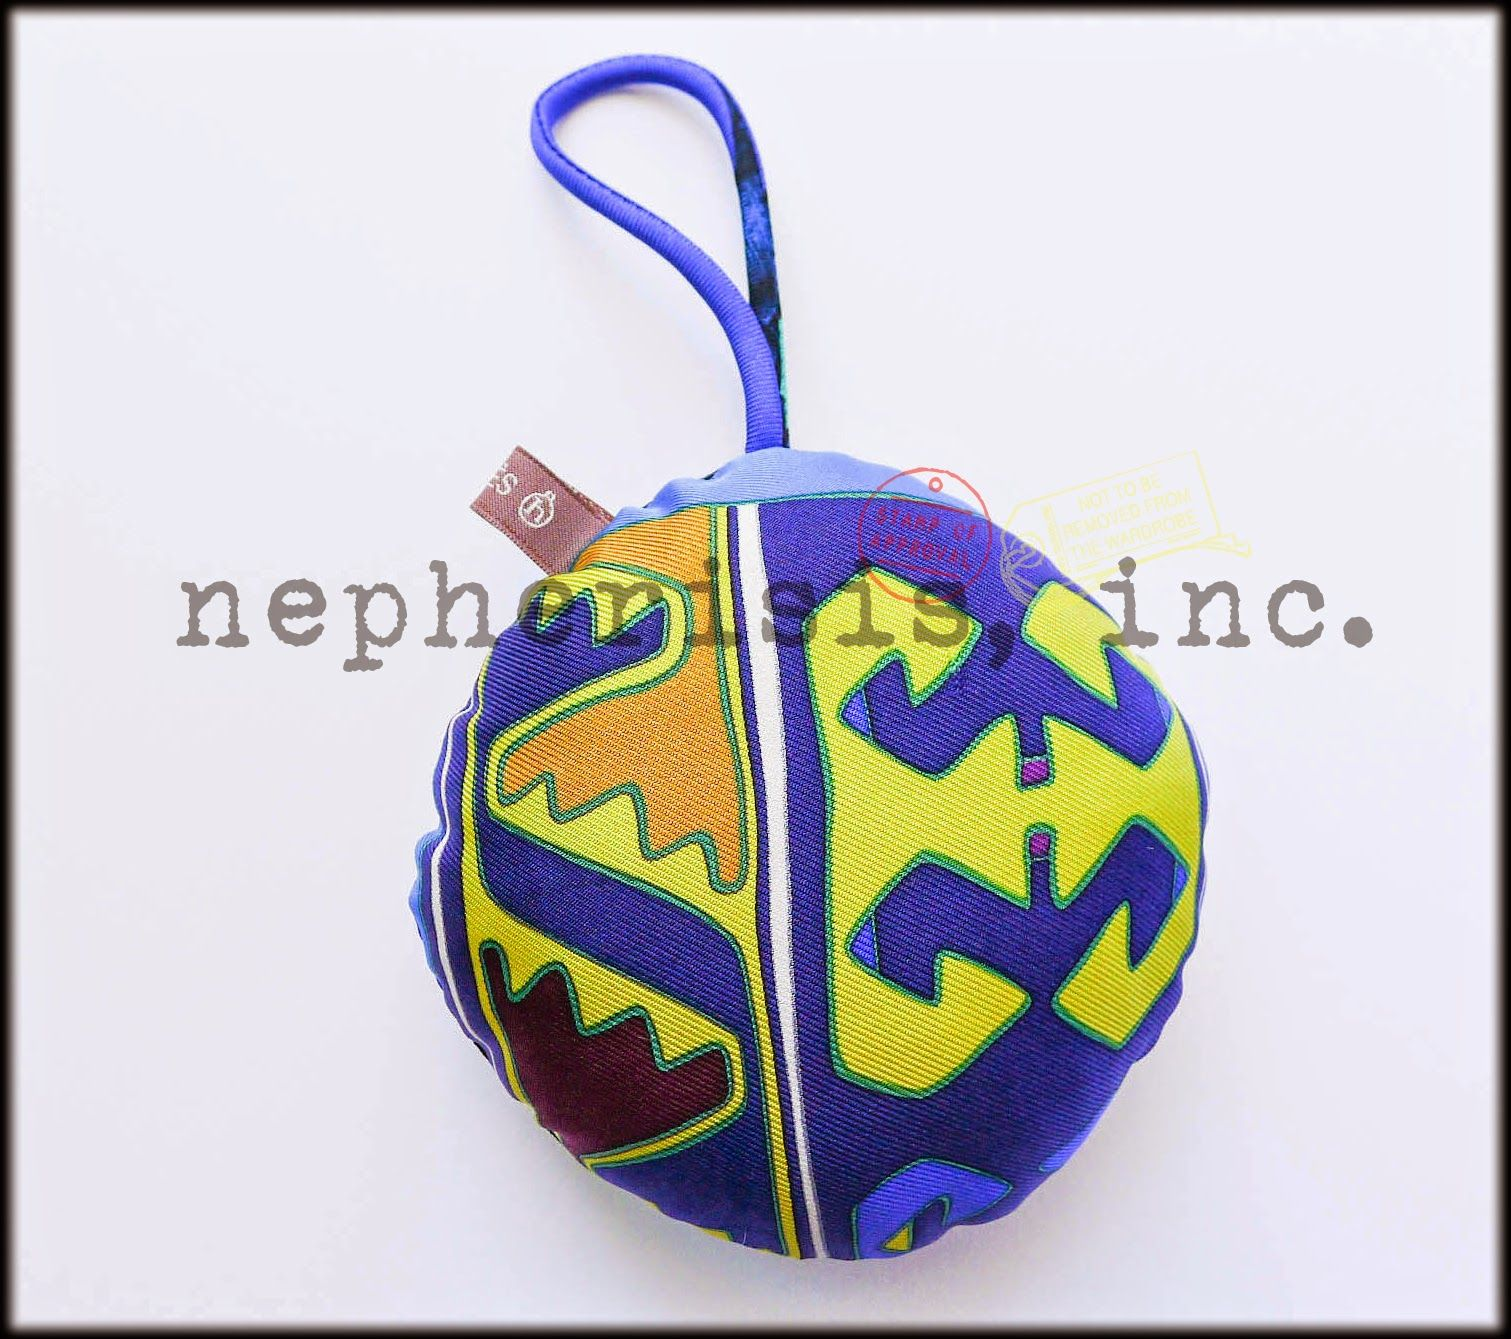 Hermes silk ball ornament or bag charm. New condition.